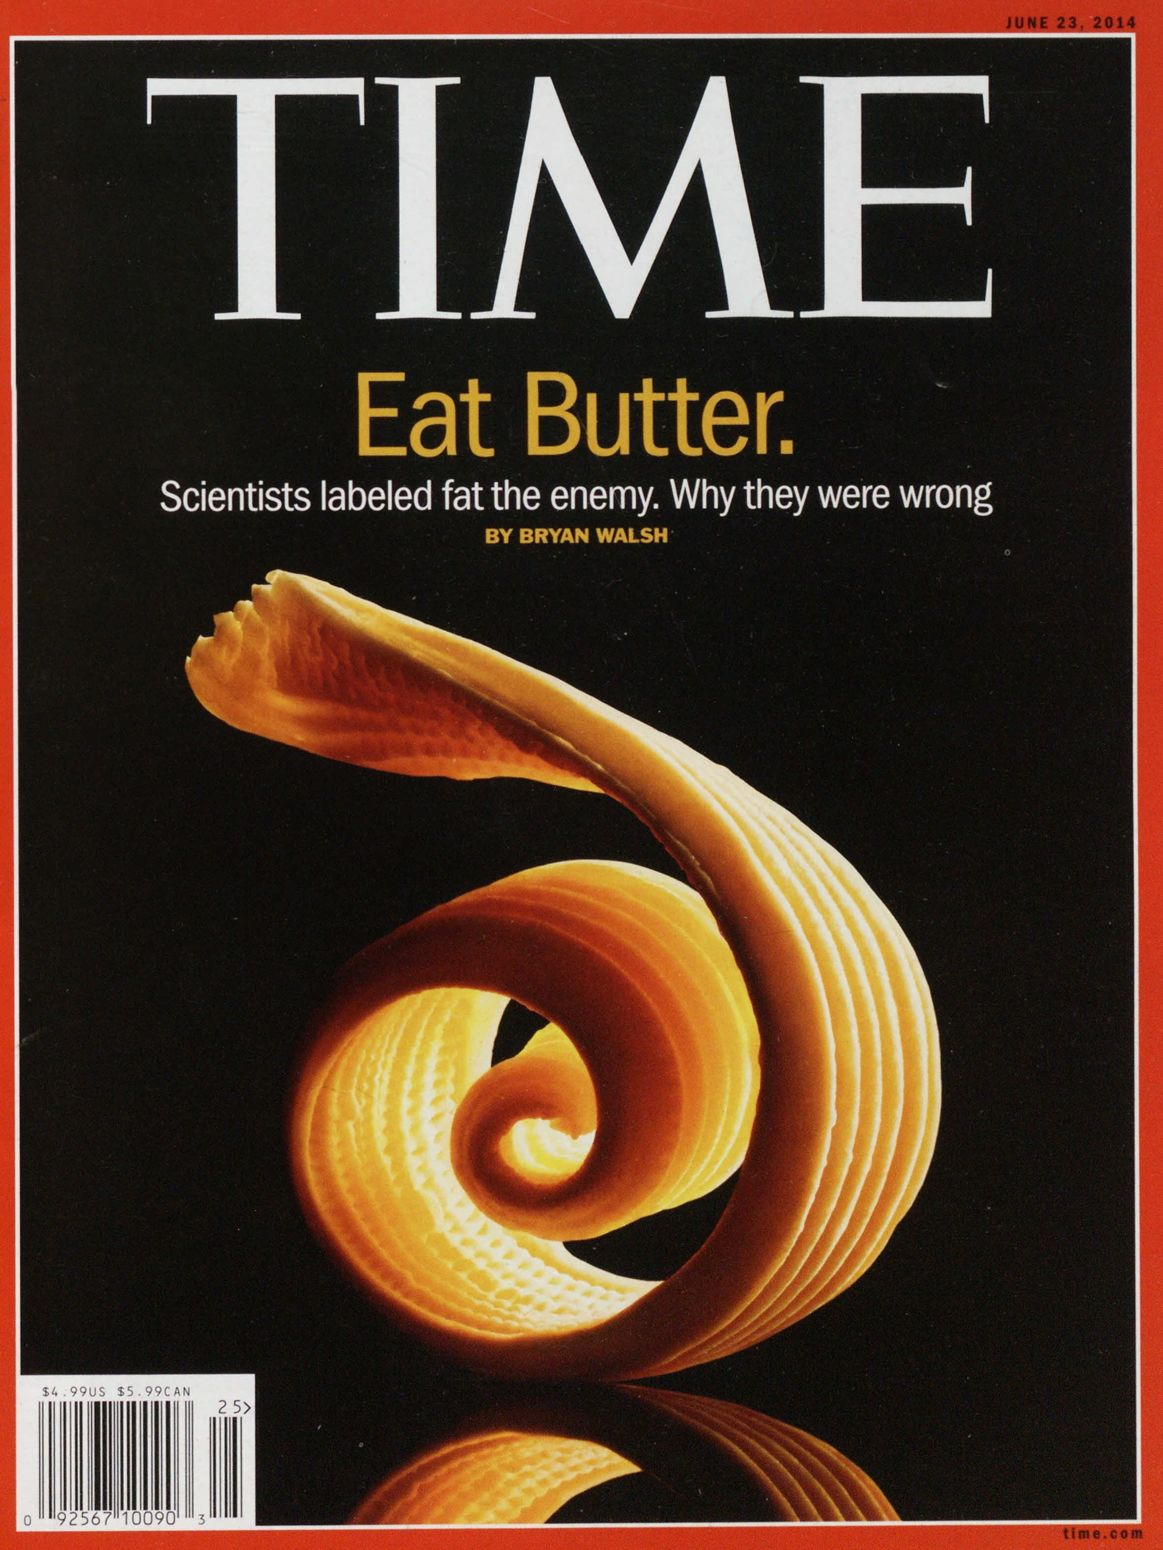 The June 23, 2014, cover of TIME